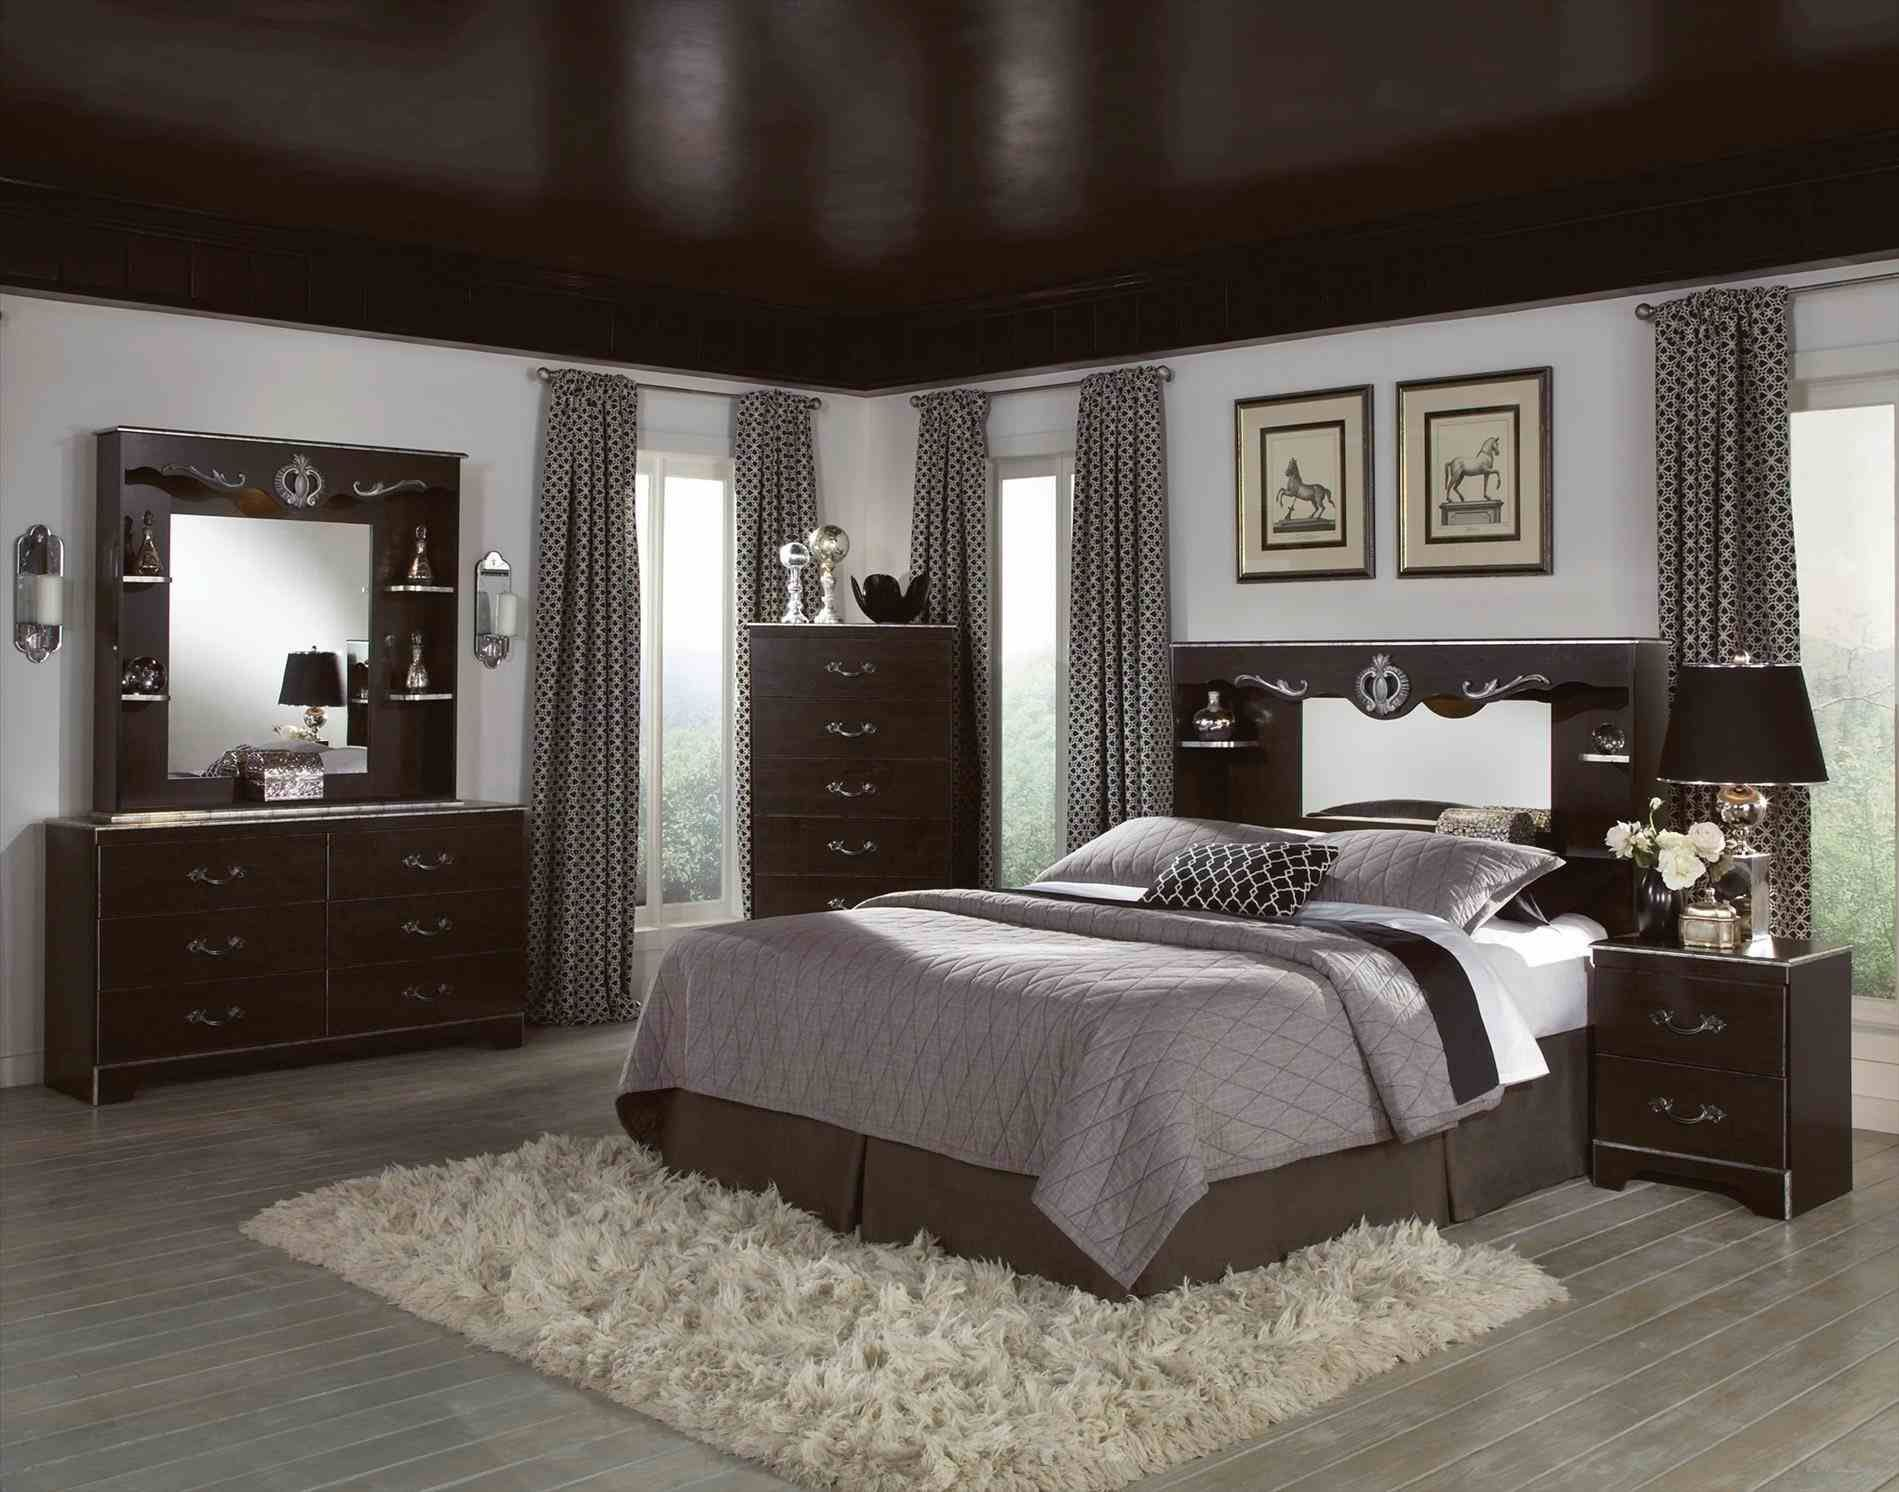 bedroom decorating ideas with black furniture bedroom decor rh pinterest com